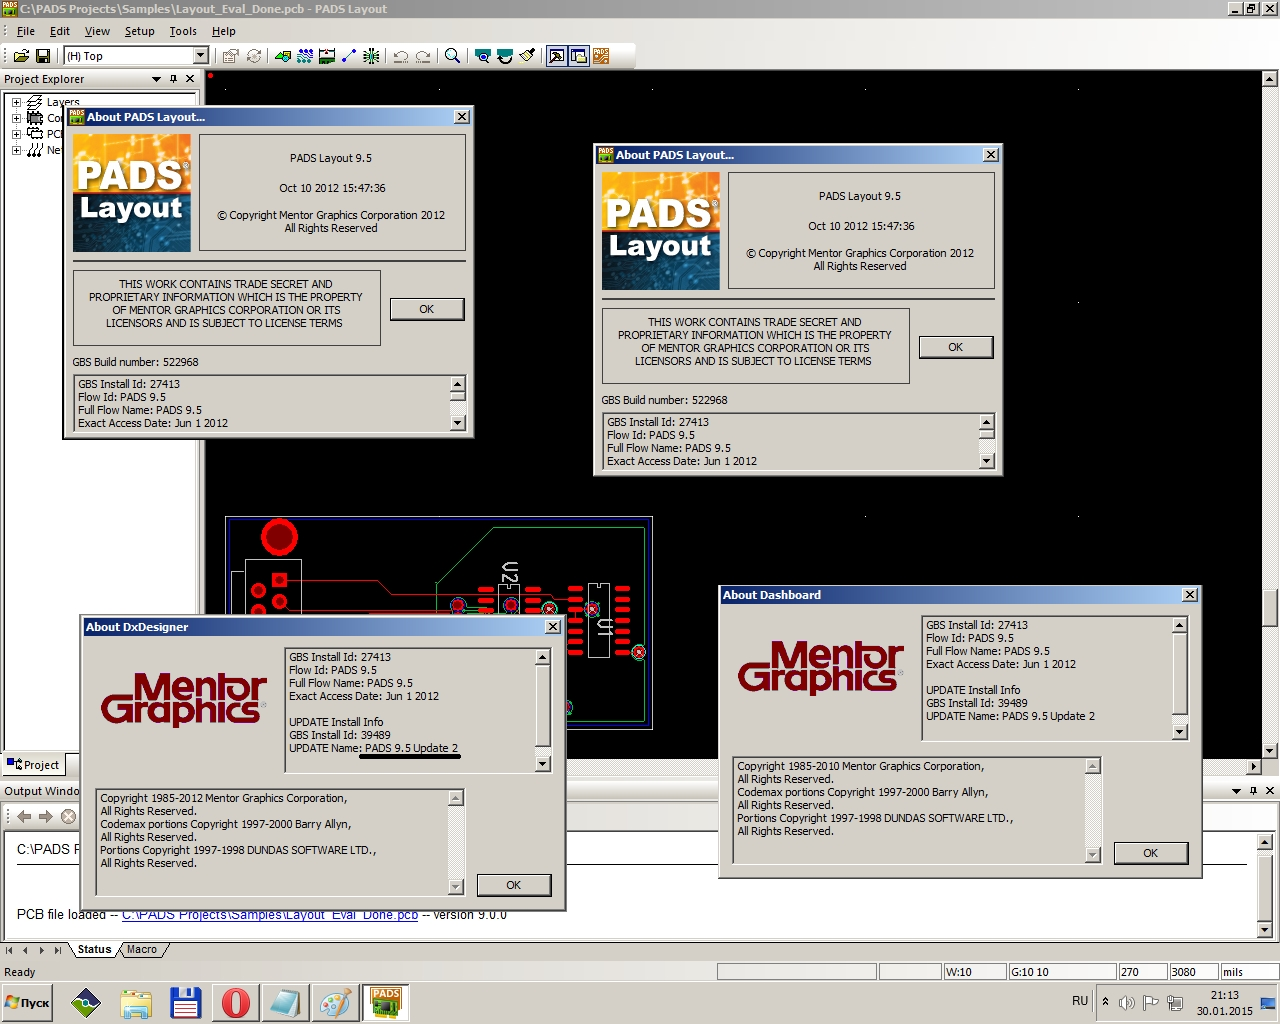 Mentor Graphics PADS 9.5 Update2